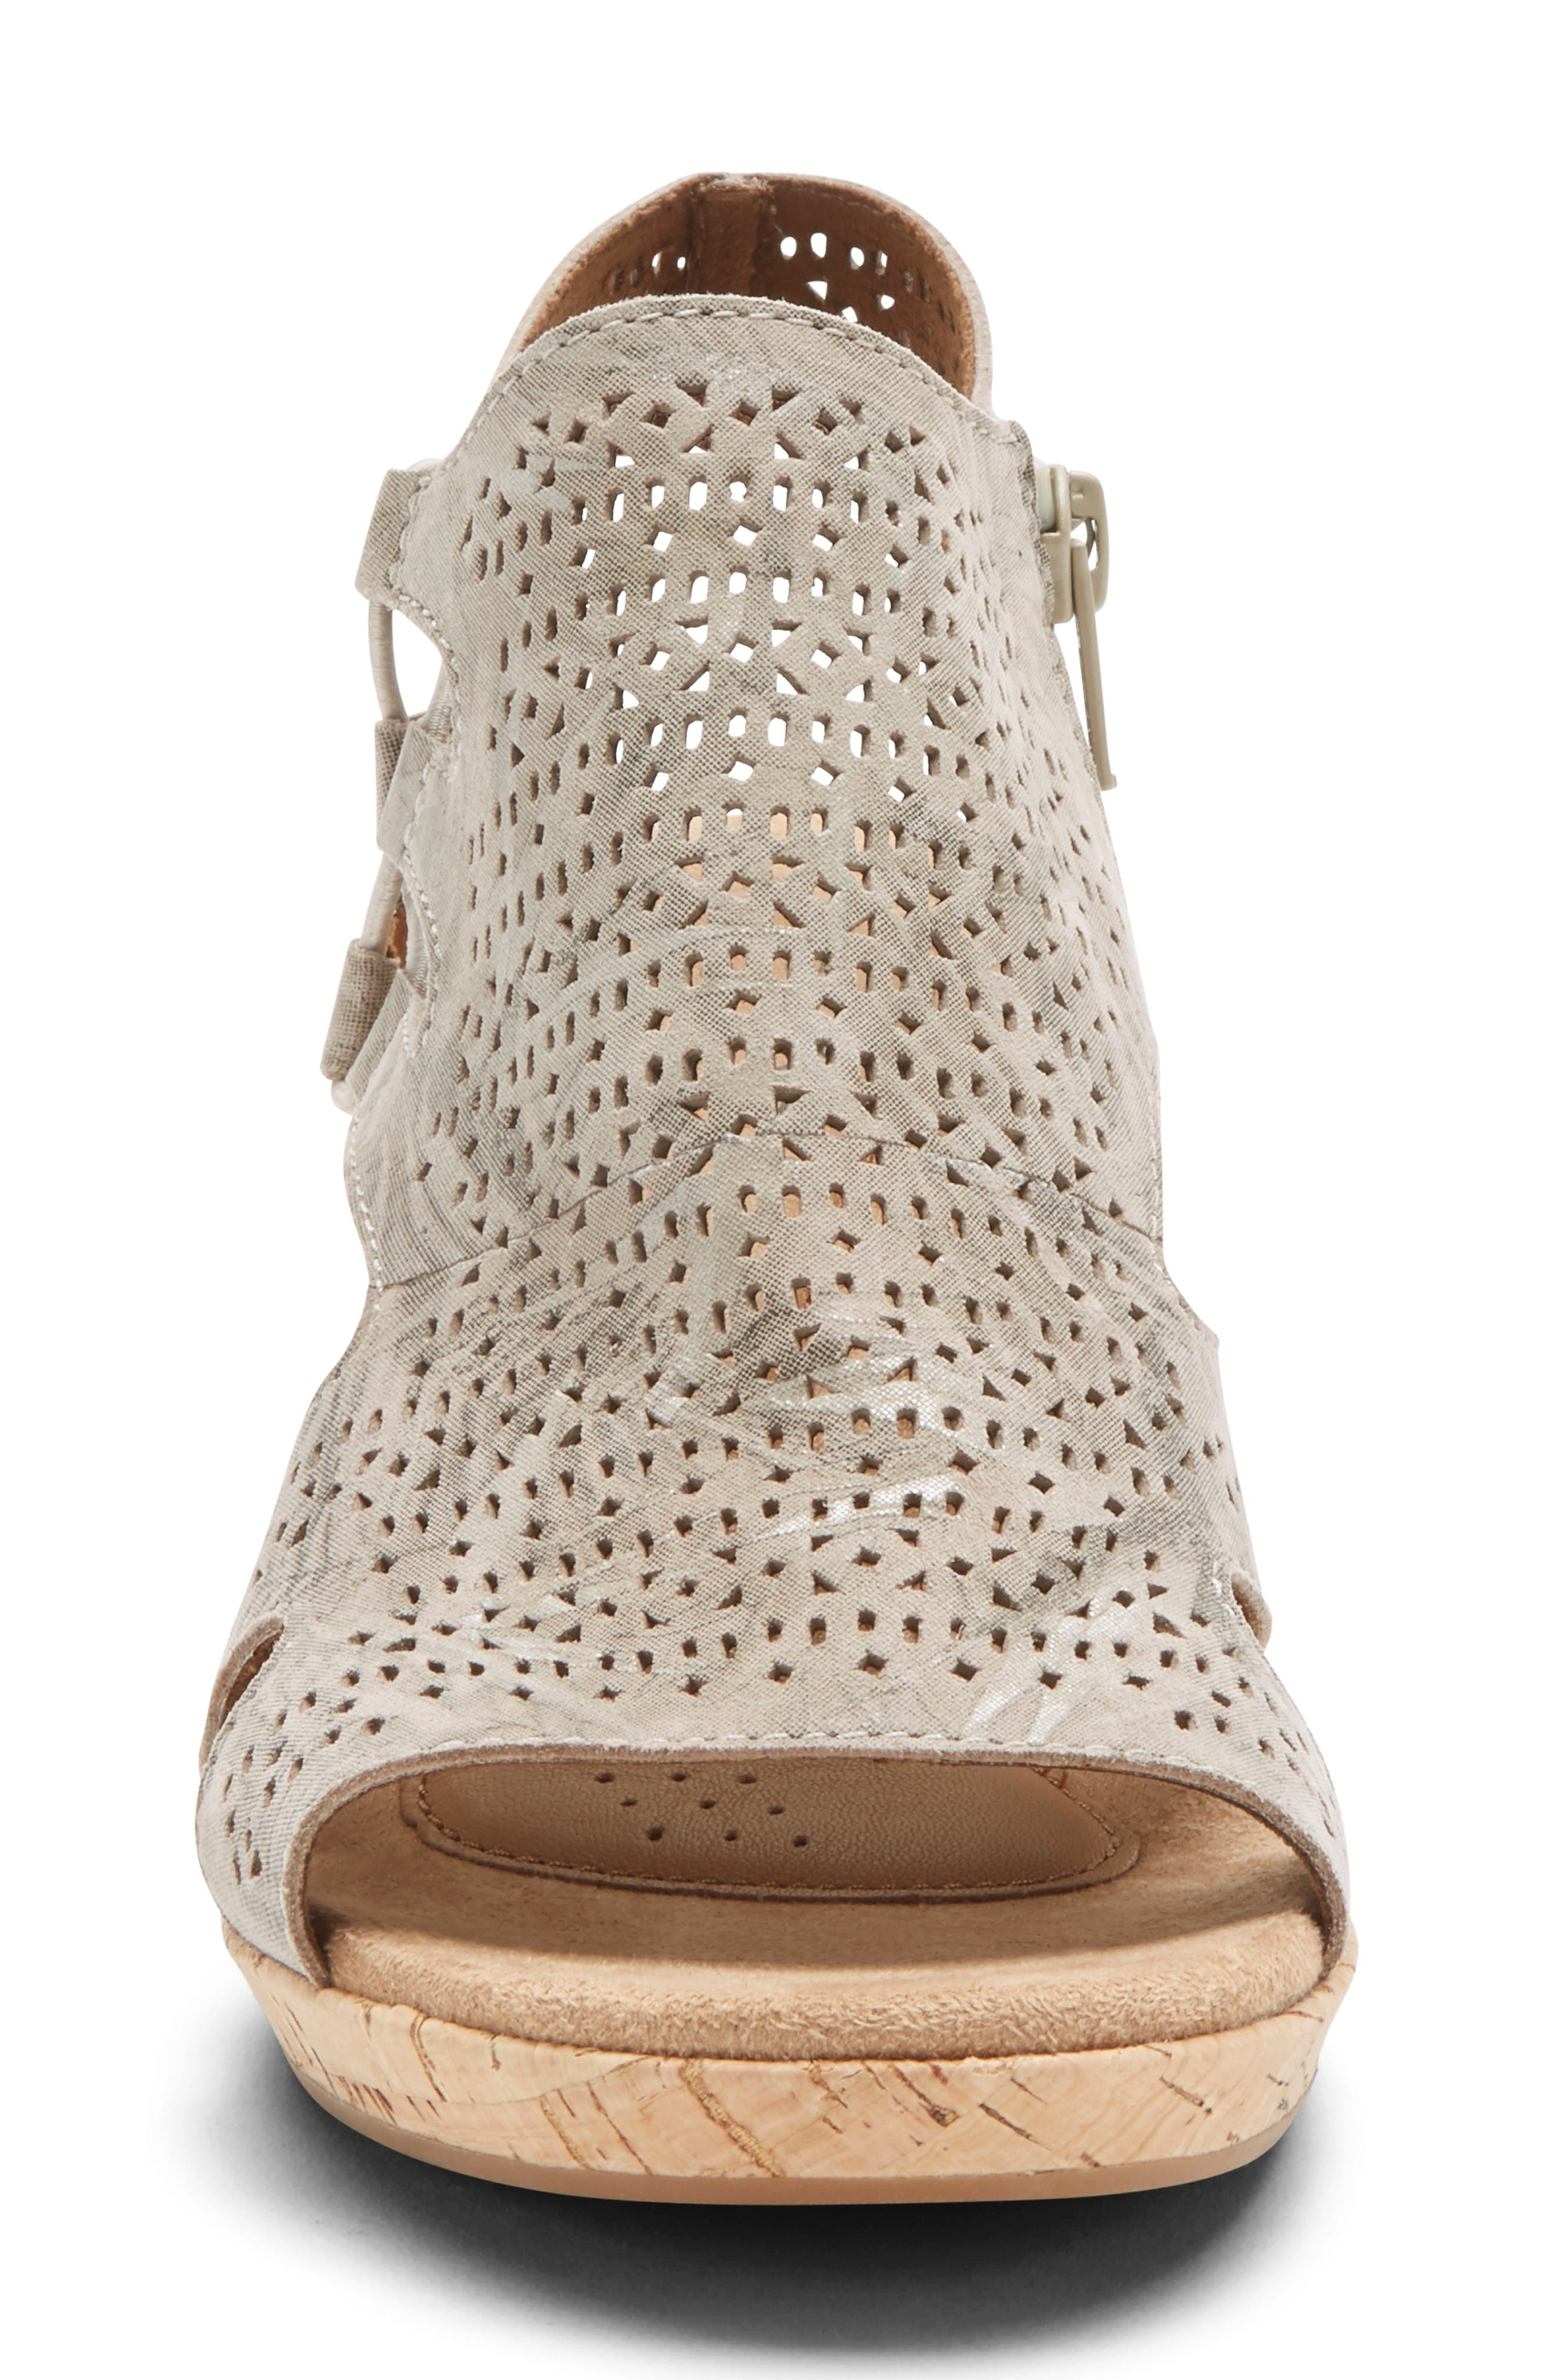 ROCKPORT COBB HILL, Janna Perforated Wedge Sandal, Alternate thumbnail 4, color, FLORAL METALLIC LEATHER